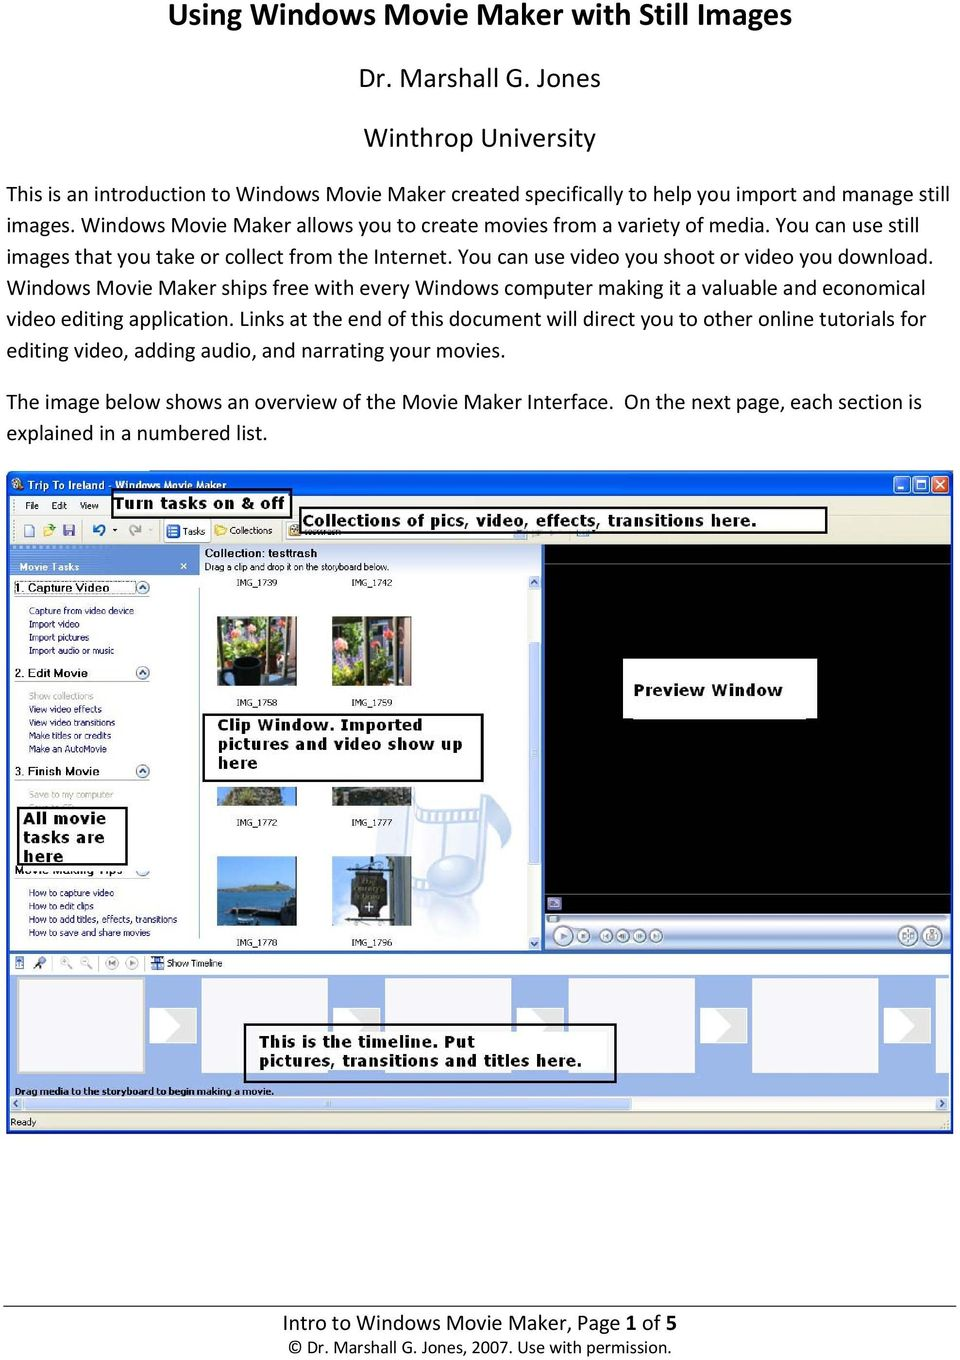 Windows Movie Maker ships free with every Windows computer making it a valuable and economical video editing application.